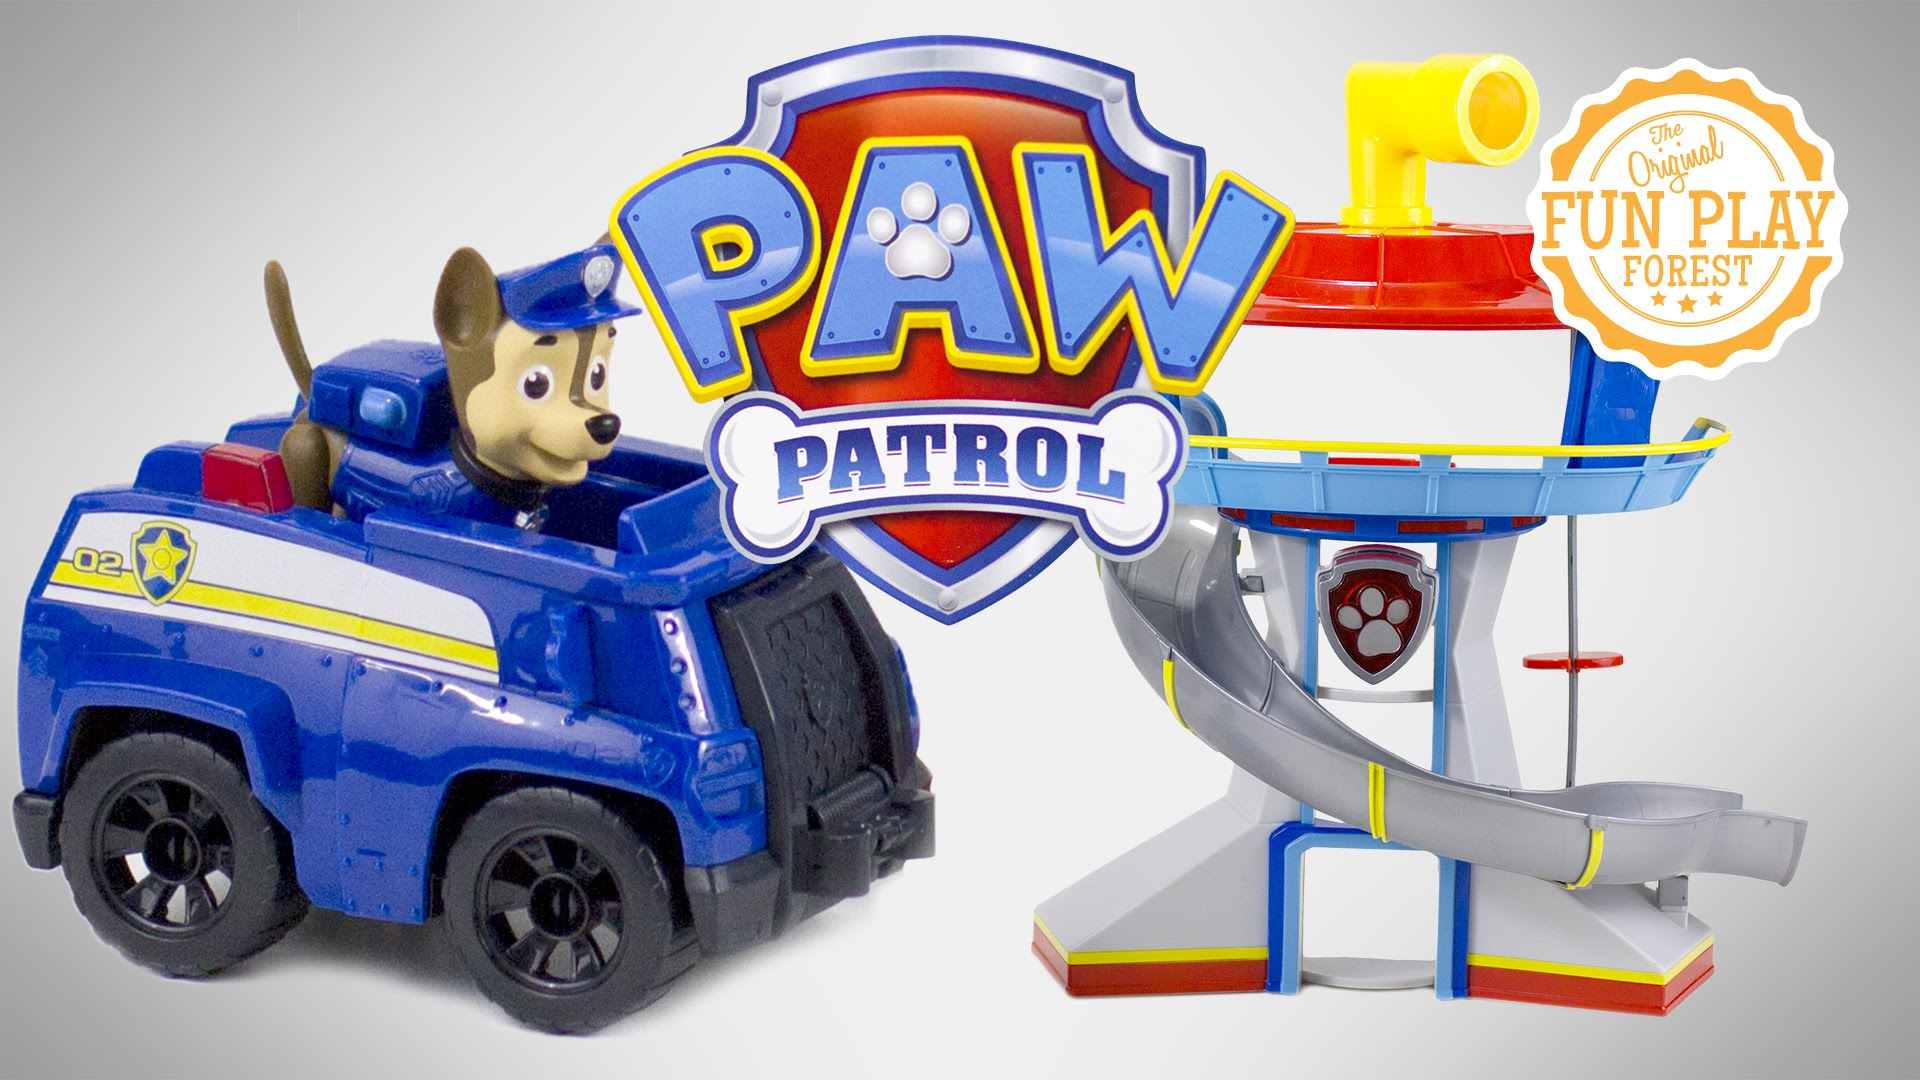 Paw Patrol Chase  wallpaper  Wide HDQ Paw Patrol Wallpapers , LL Wallpapers Paw Patrol Pp Characterart Chase   Imagenes de paw patrol  Huge Collection of High Definition 1920x1080